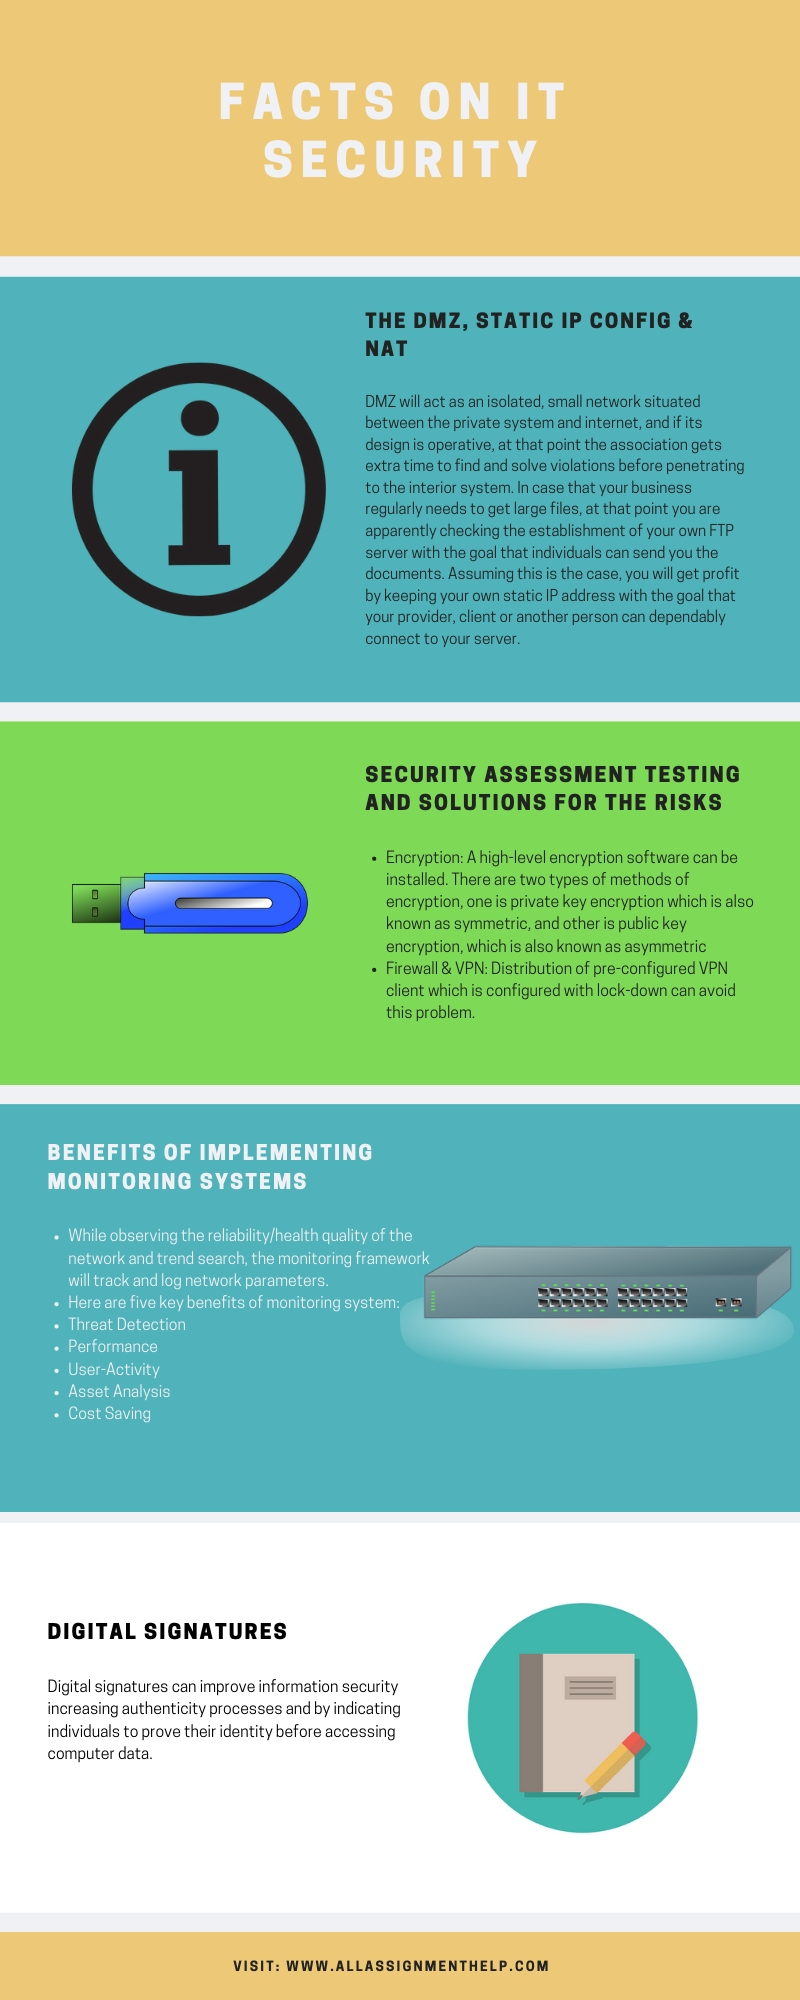 Facts on Information Security